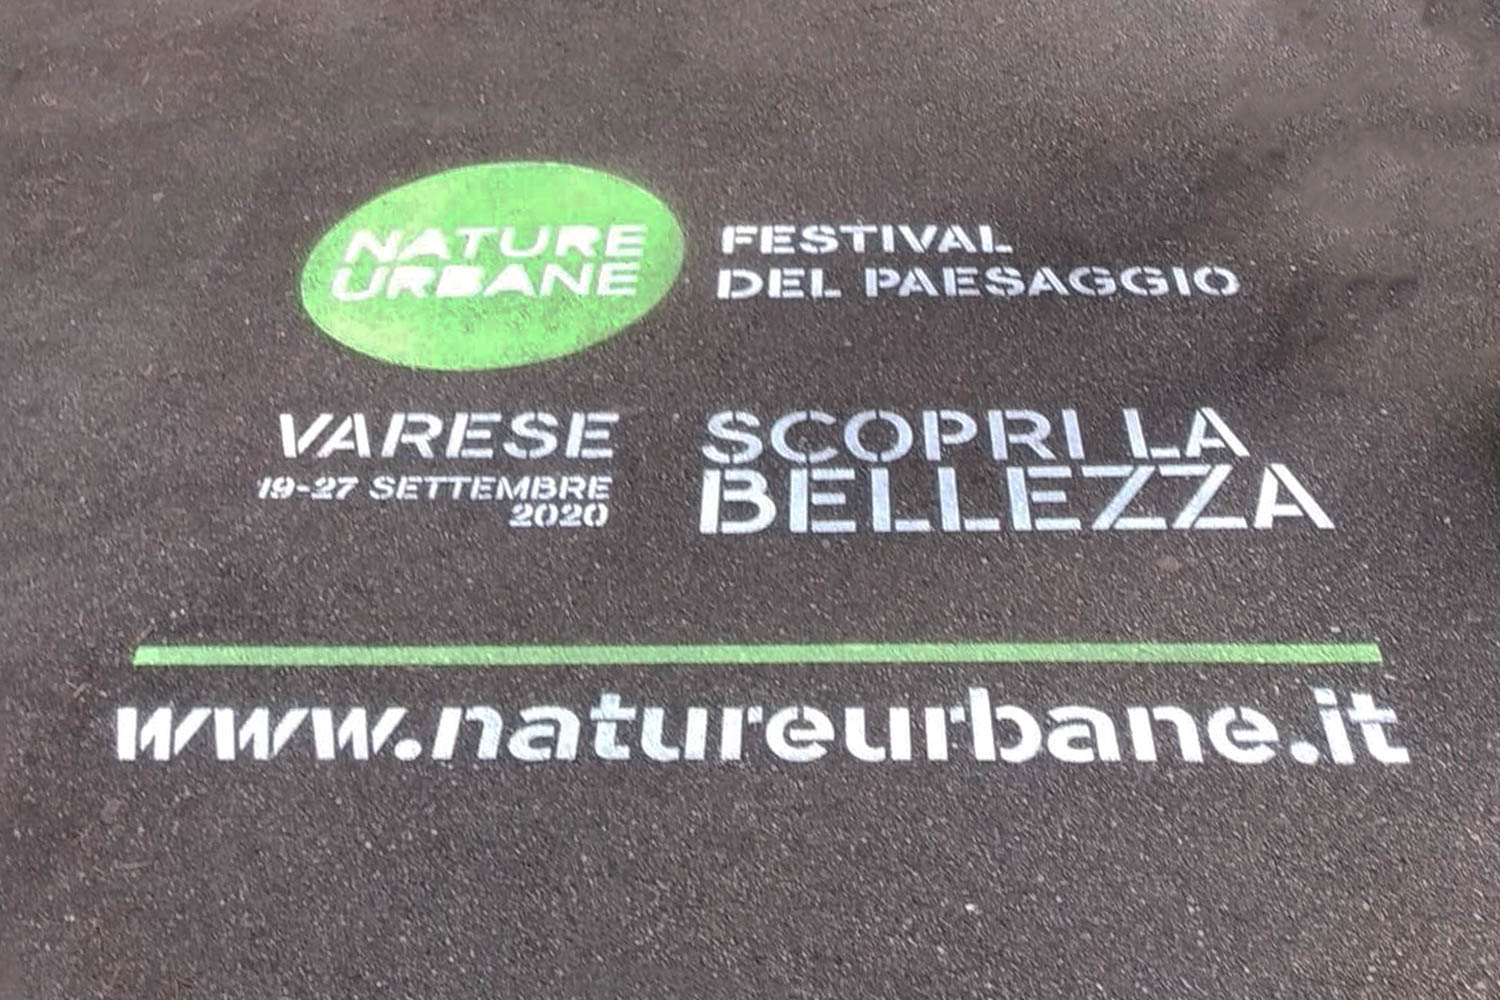 street marketing comune di varese nature urbane